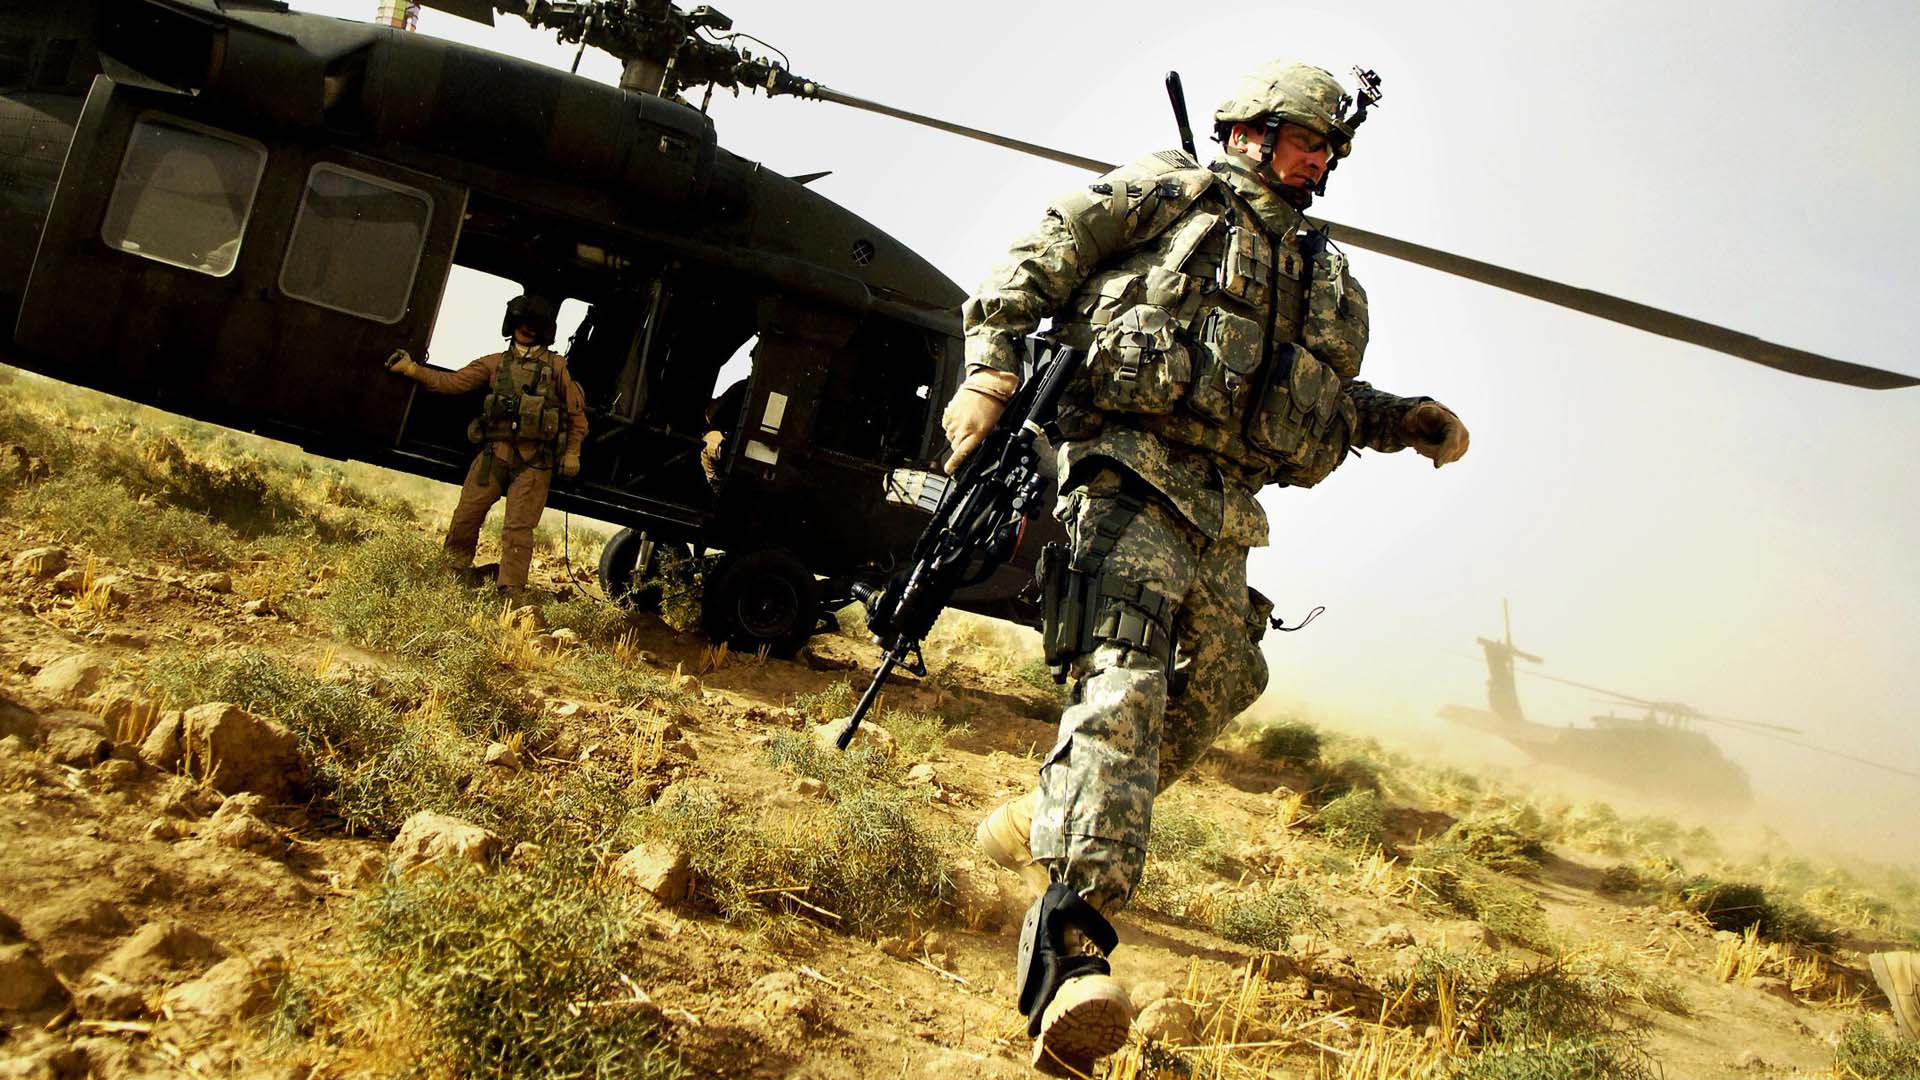 Awesome US Army wallpaper in HD 1920x1080